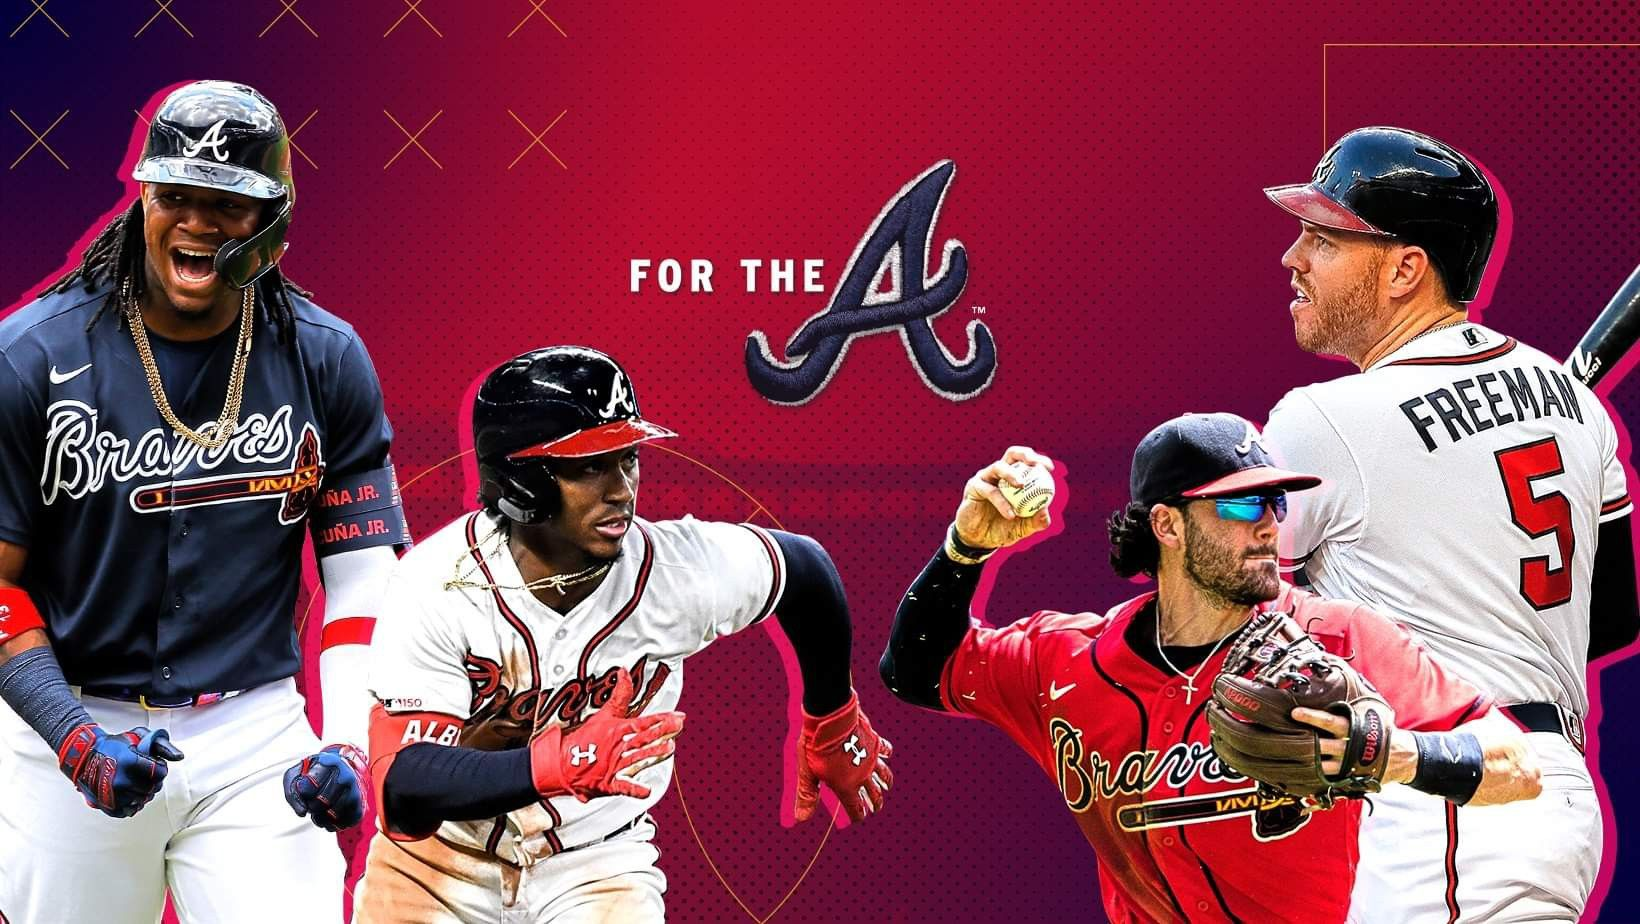 Pin By Michael Griede On Atlanta Braves In 2020 Atlanta Braves Atlanta Braves